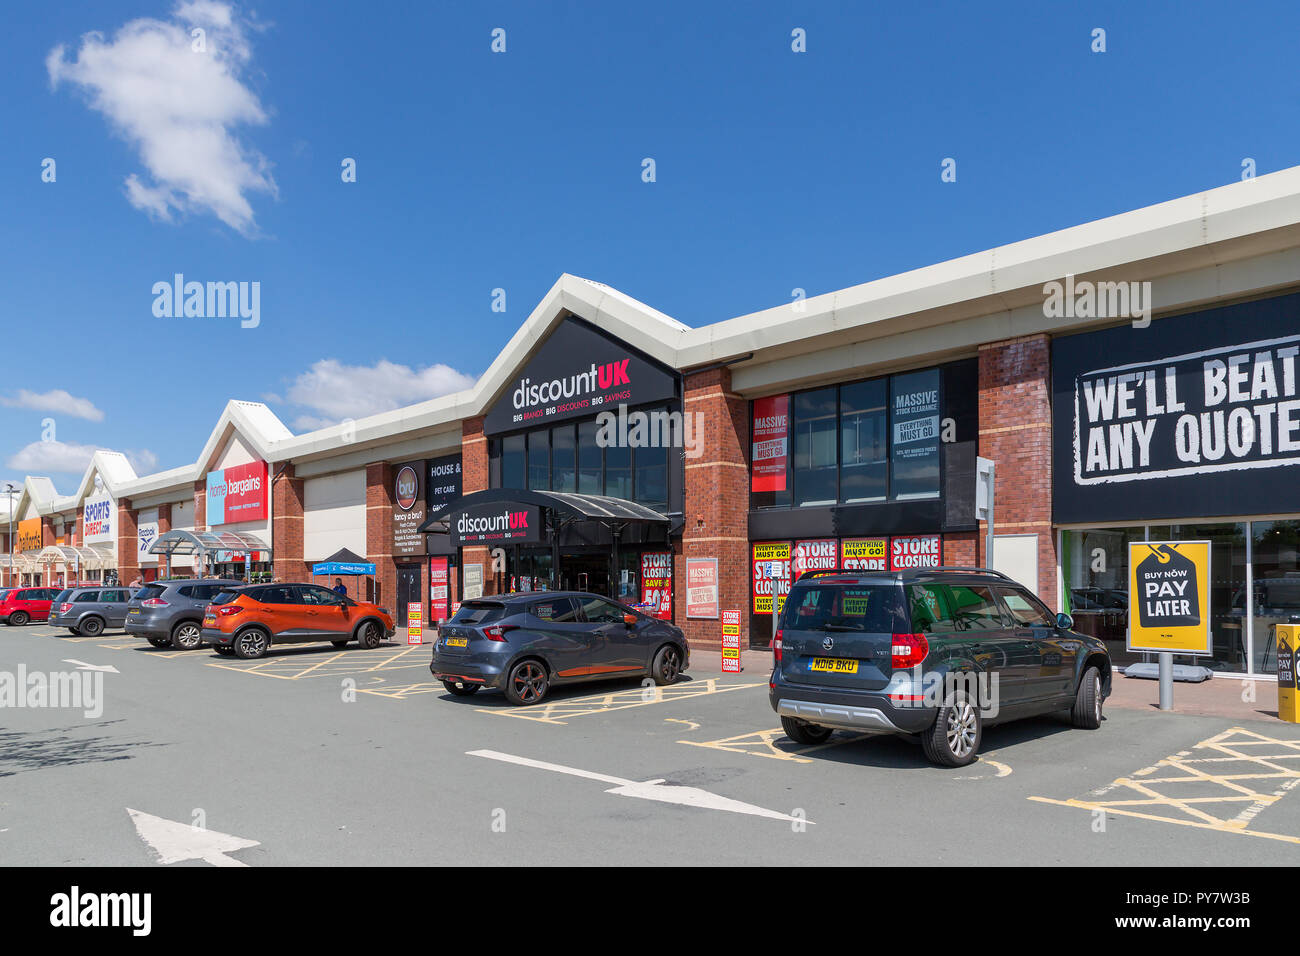 Warrington Branch Of Discount Uk On The Riverside Retail Park The Store Has Now Closed Stock Photo Alamy